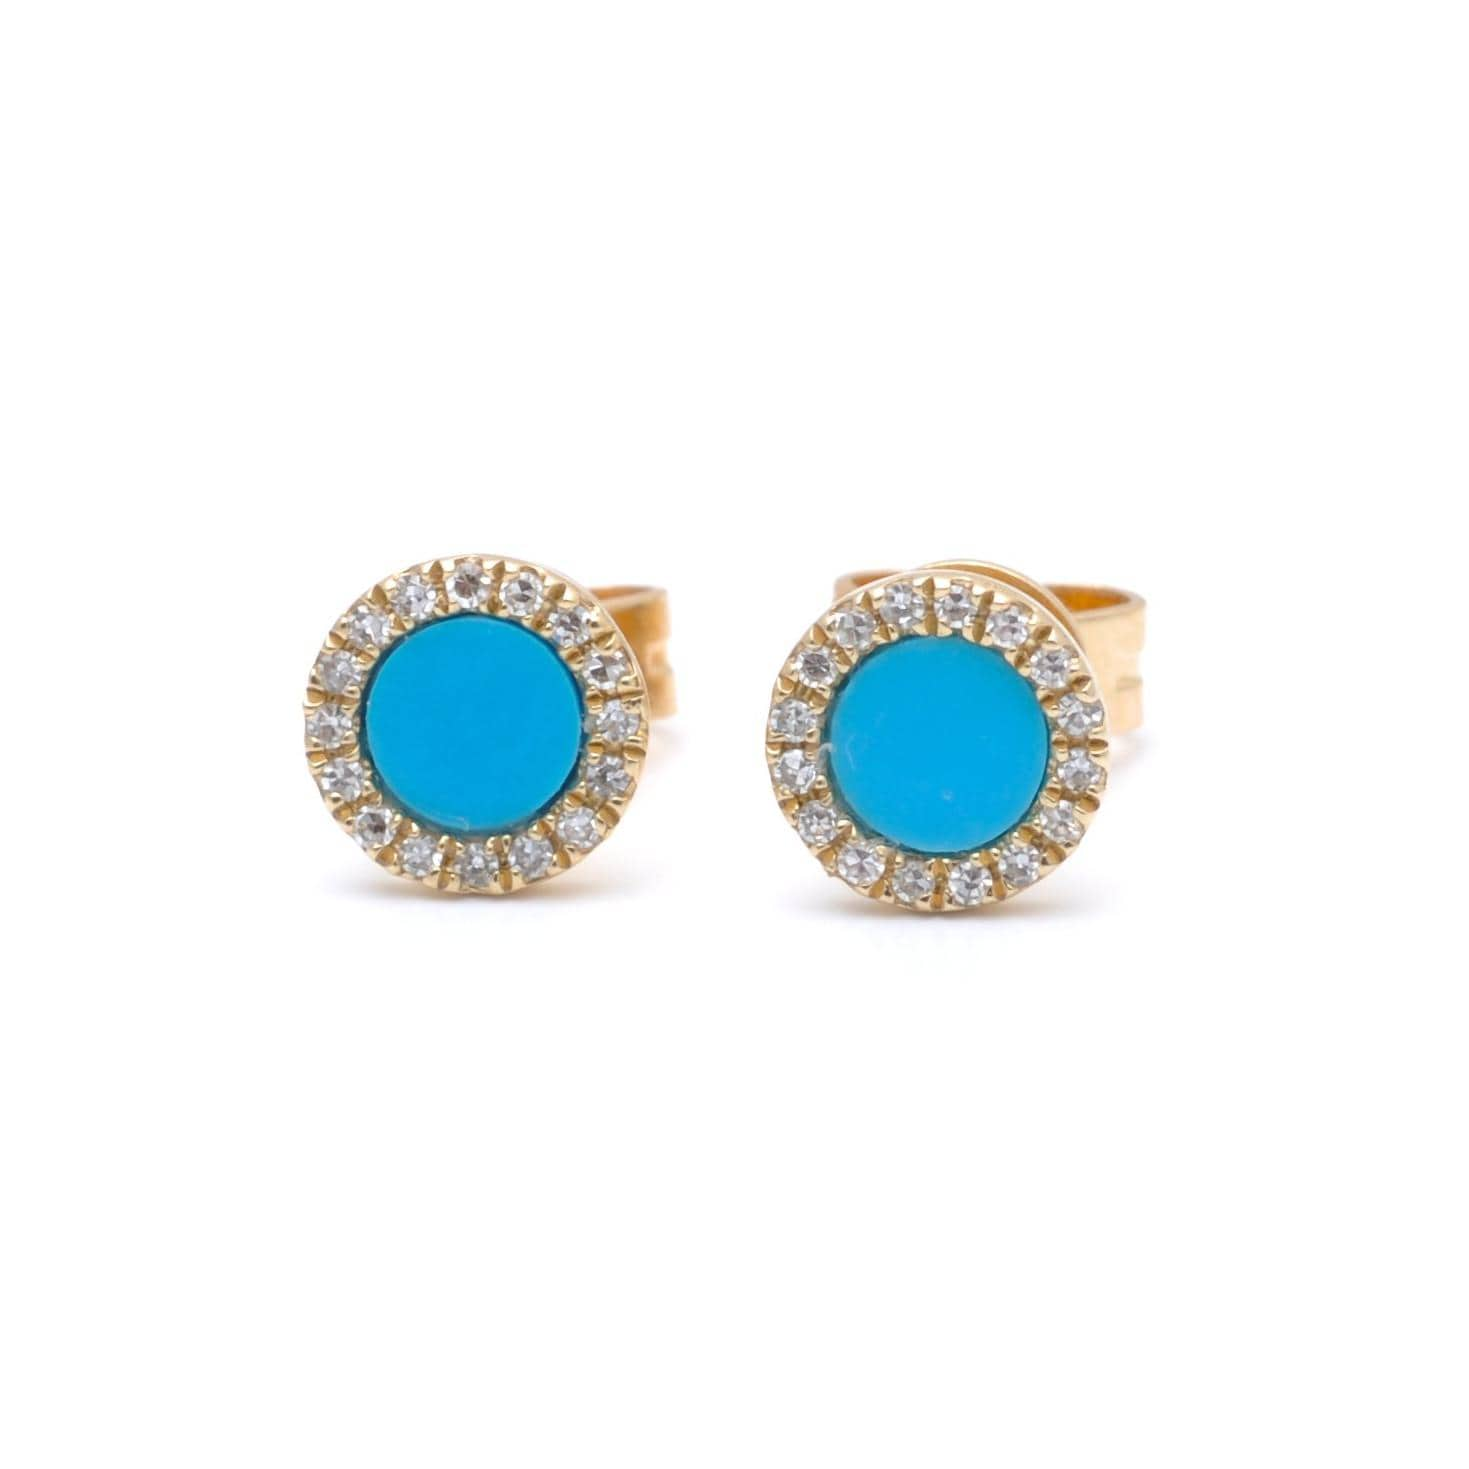 Round Turquoise Diamond Halo Earrings Curated Los Angeles